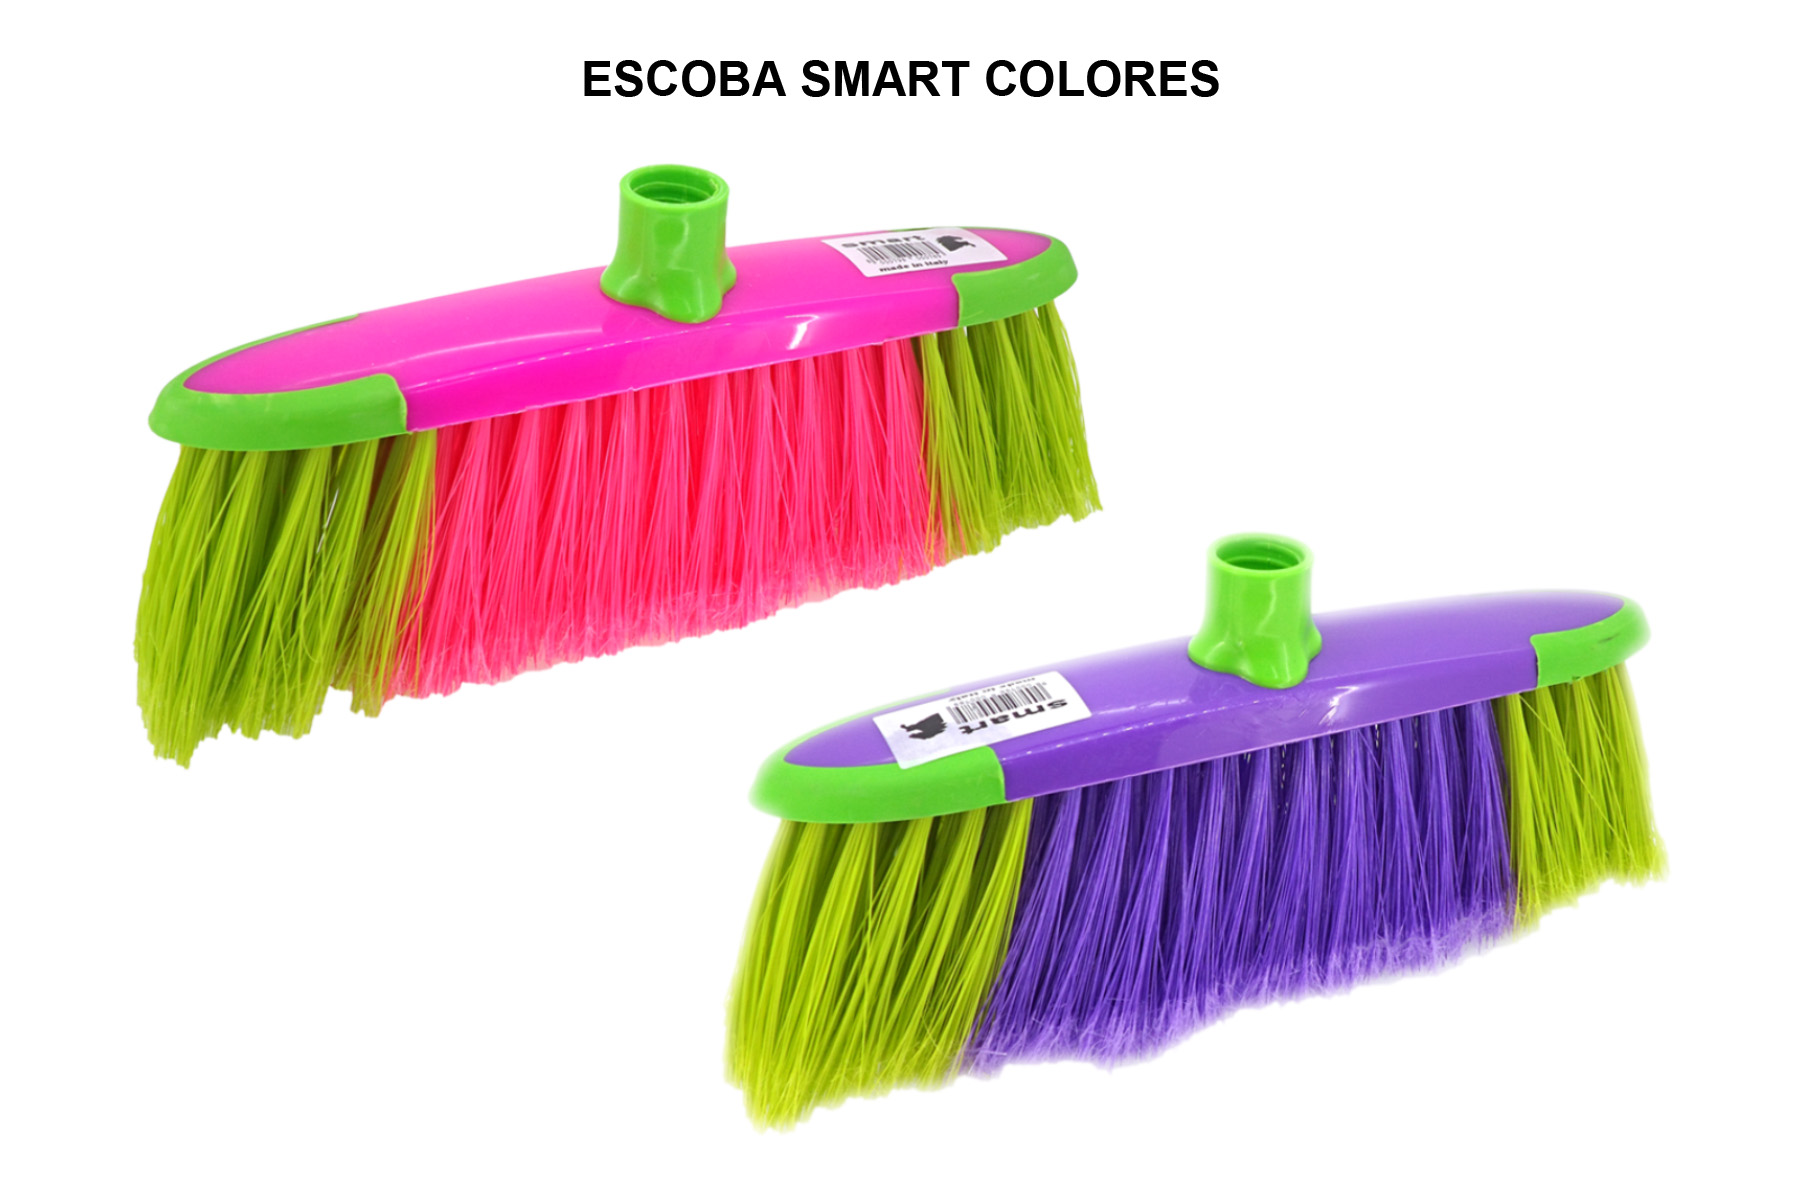 ESCOBA SMART COLORES S/PALO